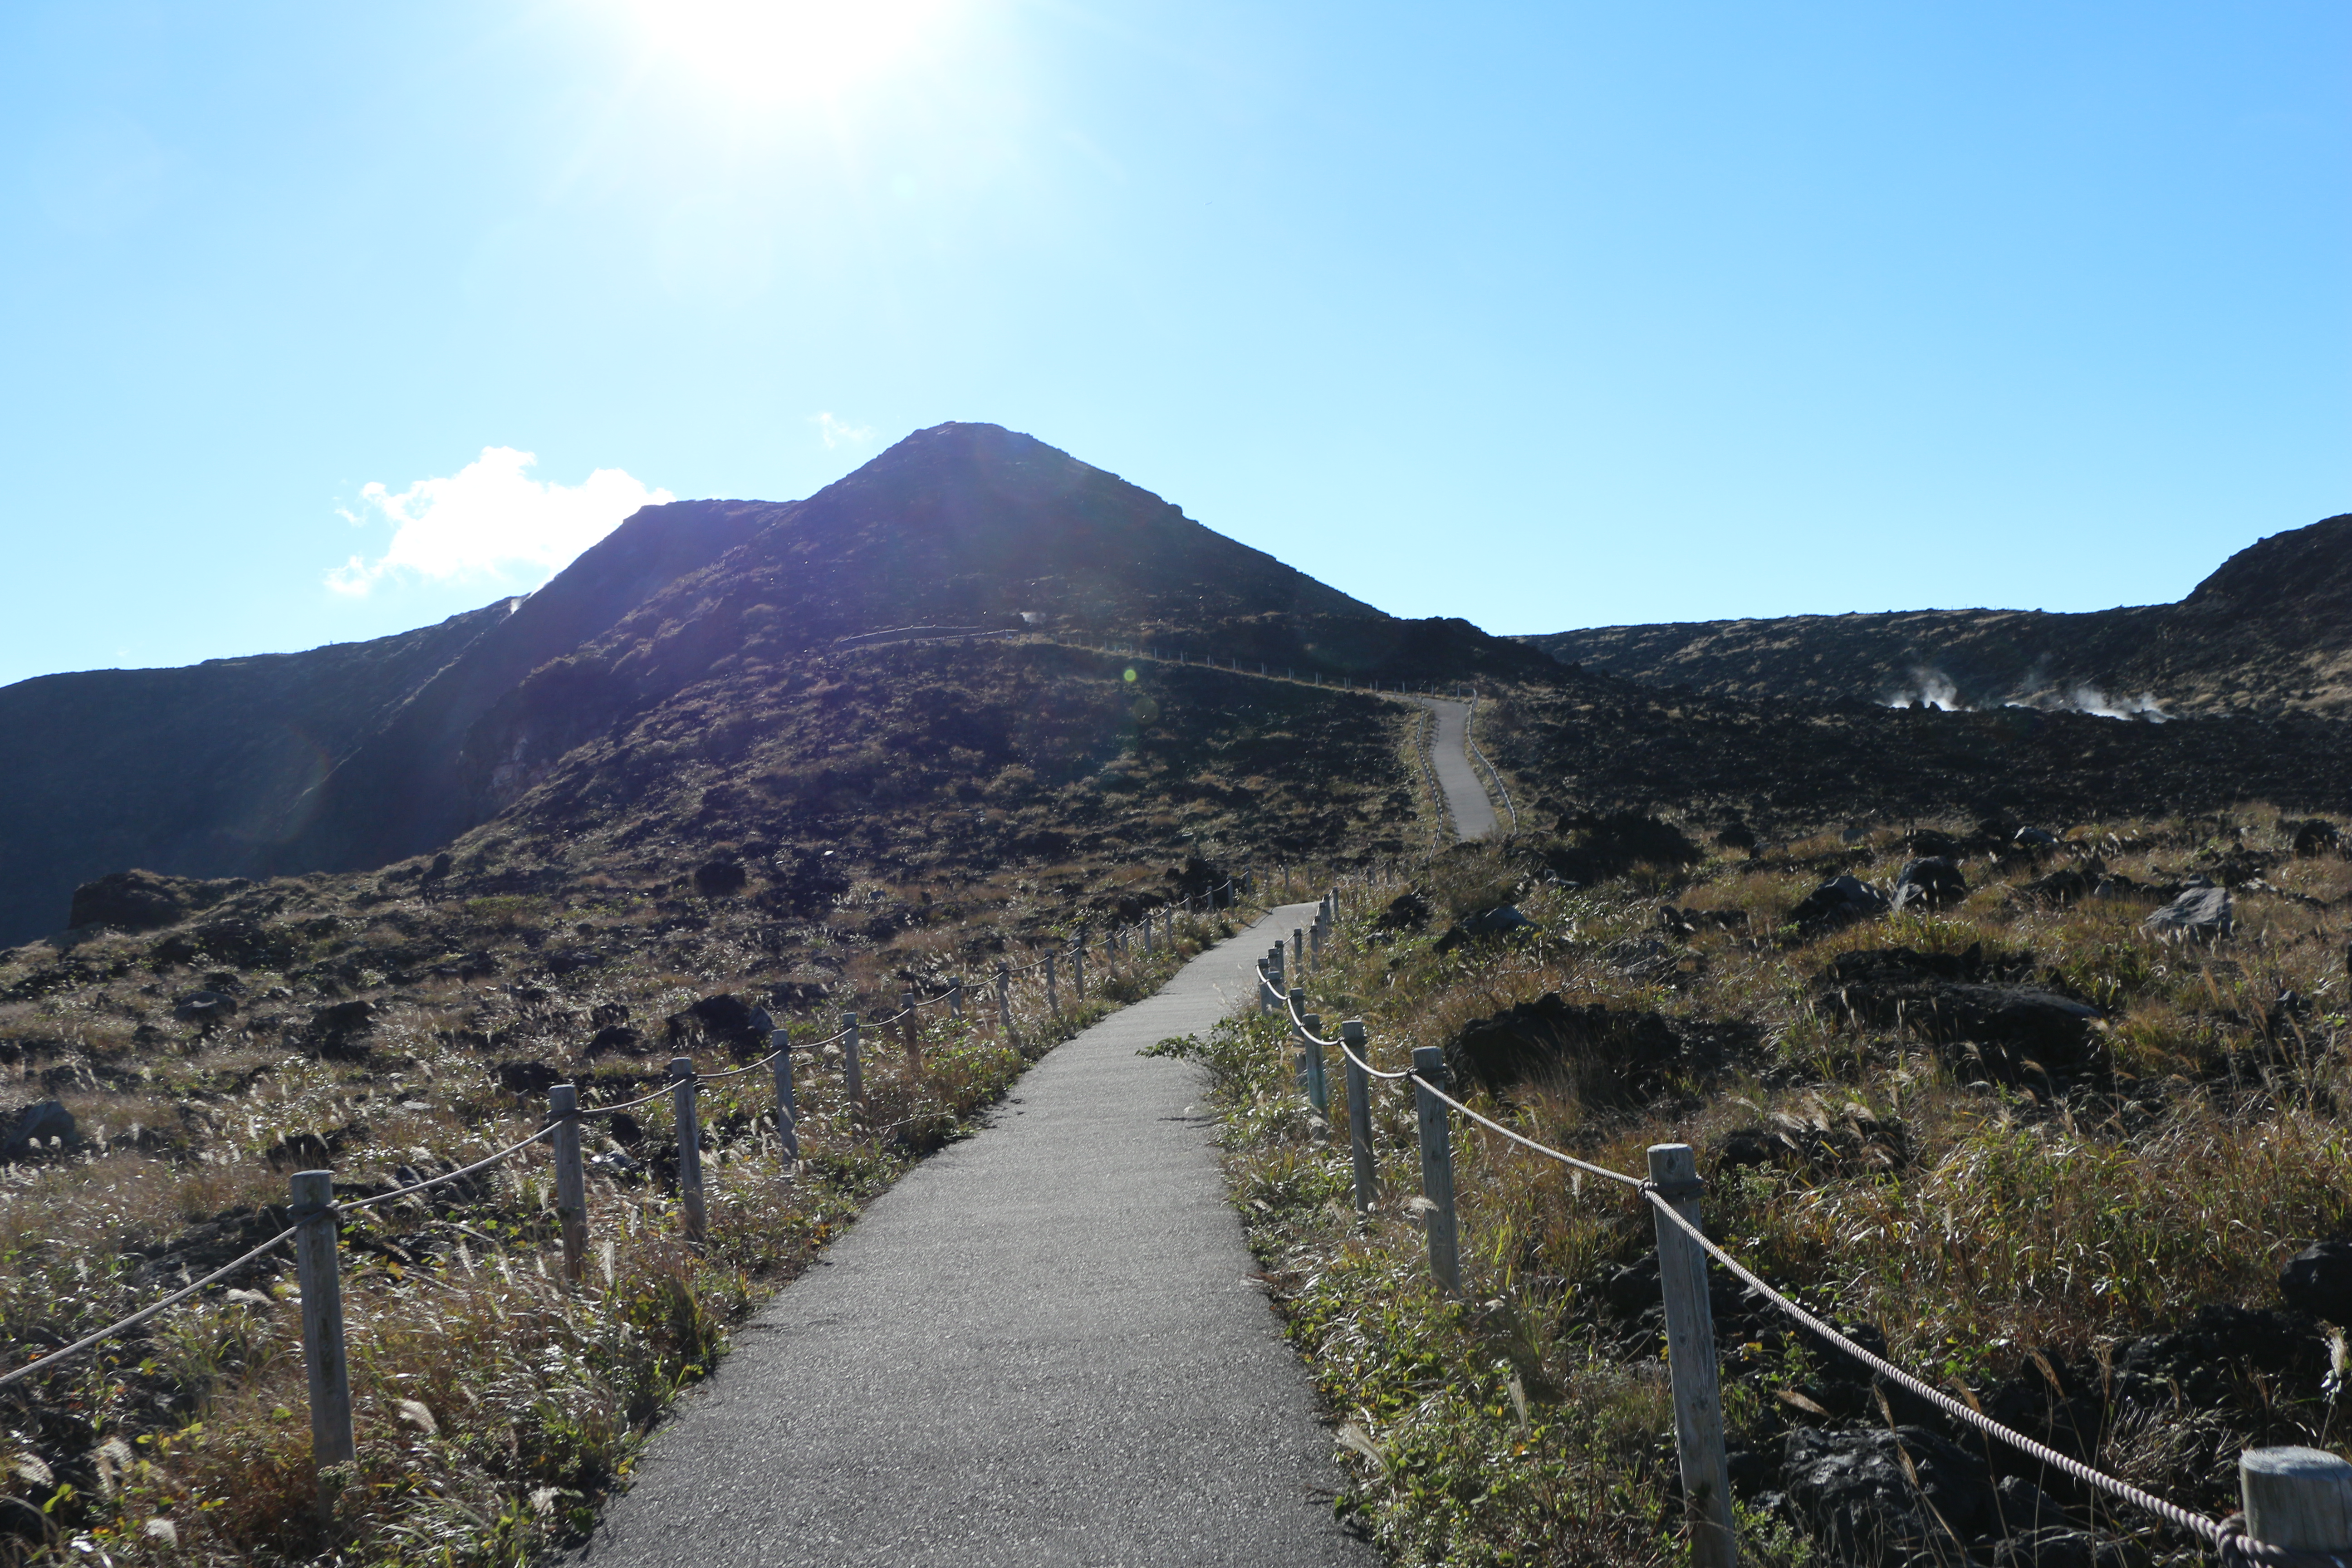 Hiking on Mt. Mihara: feel connected with volcanoes and forests